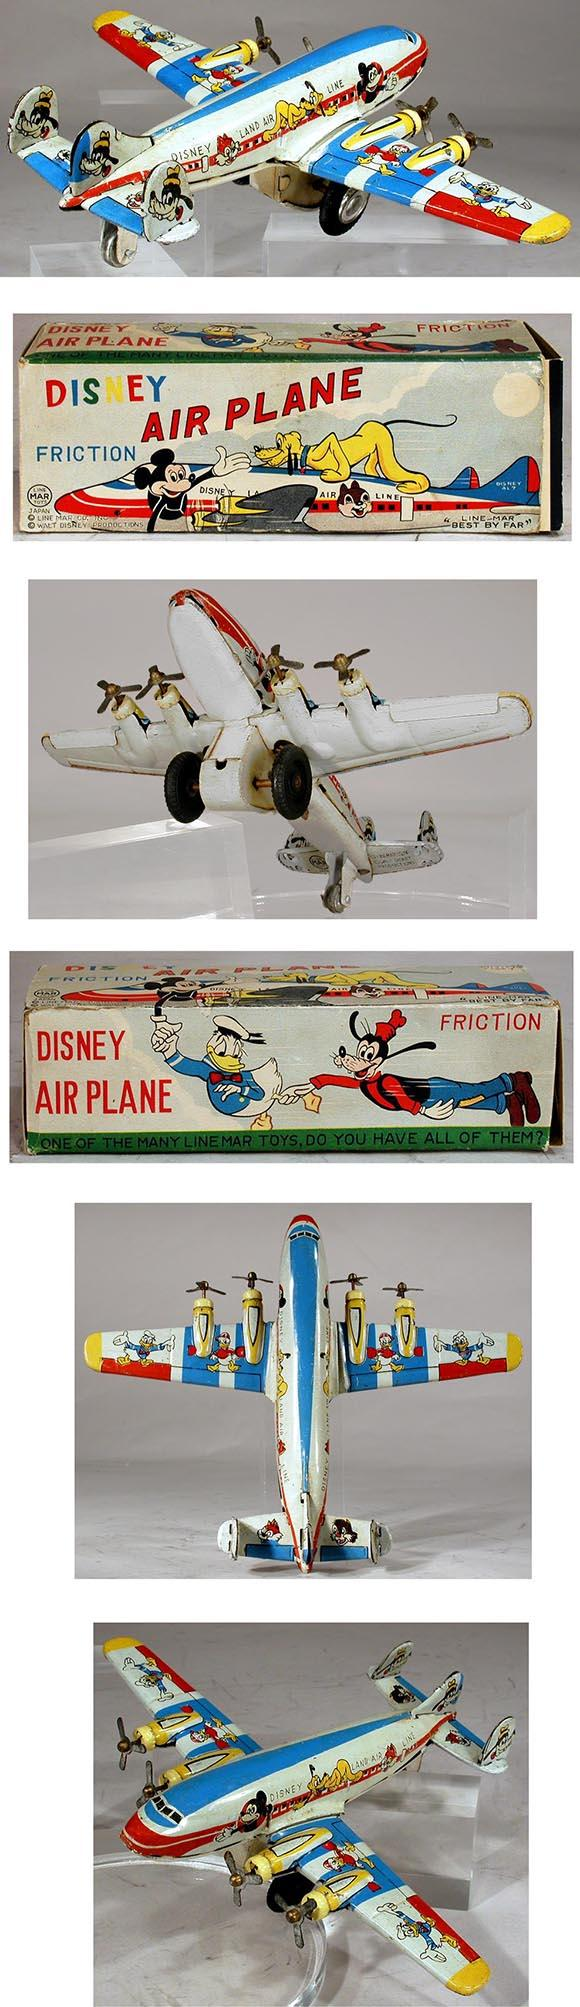 1959 Linemar, Disney Friction Airplane in Original Box